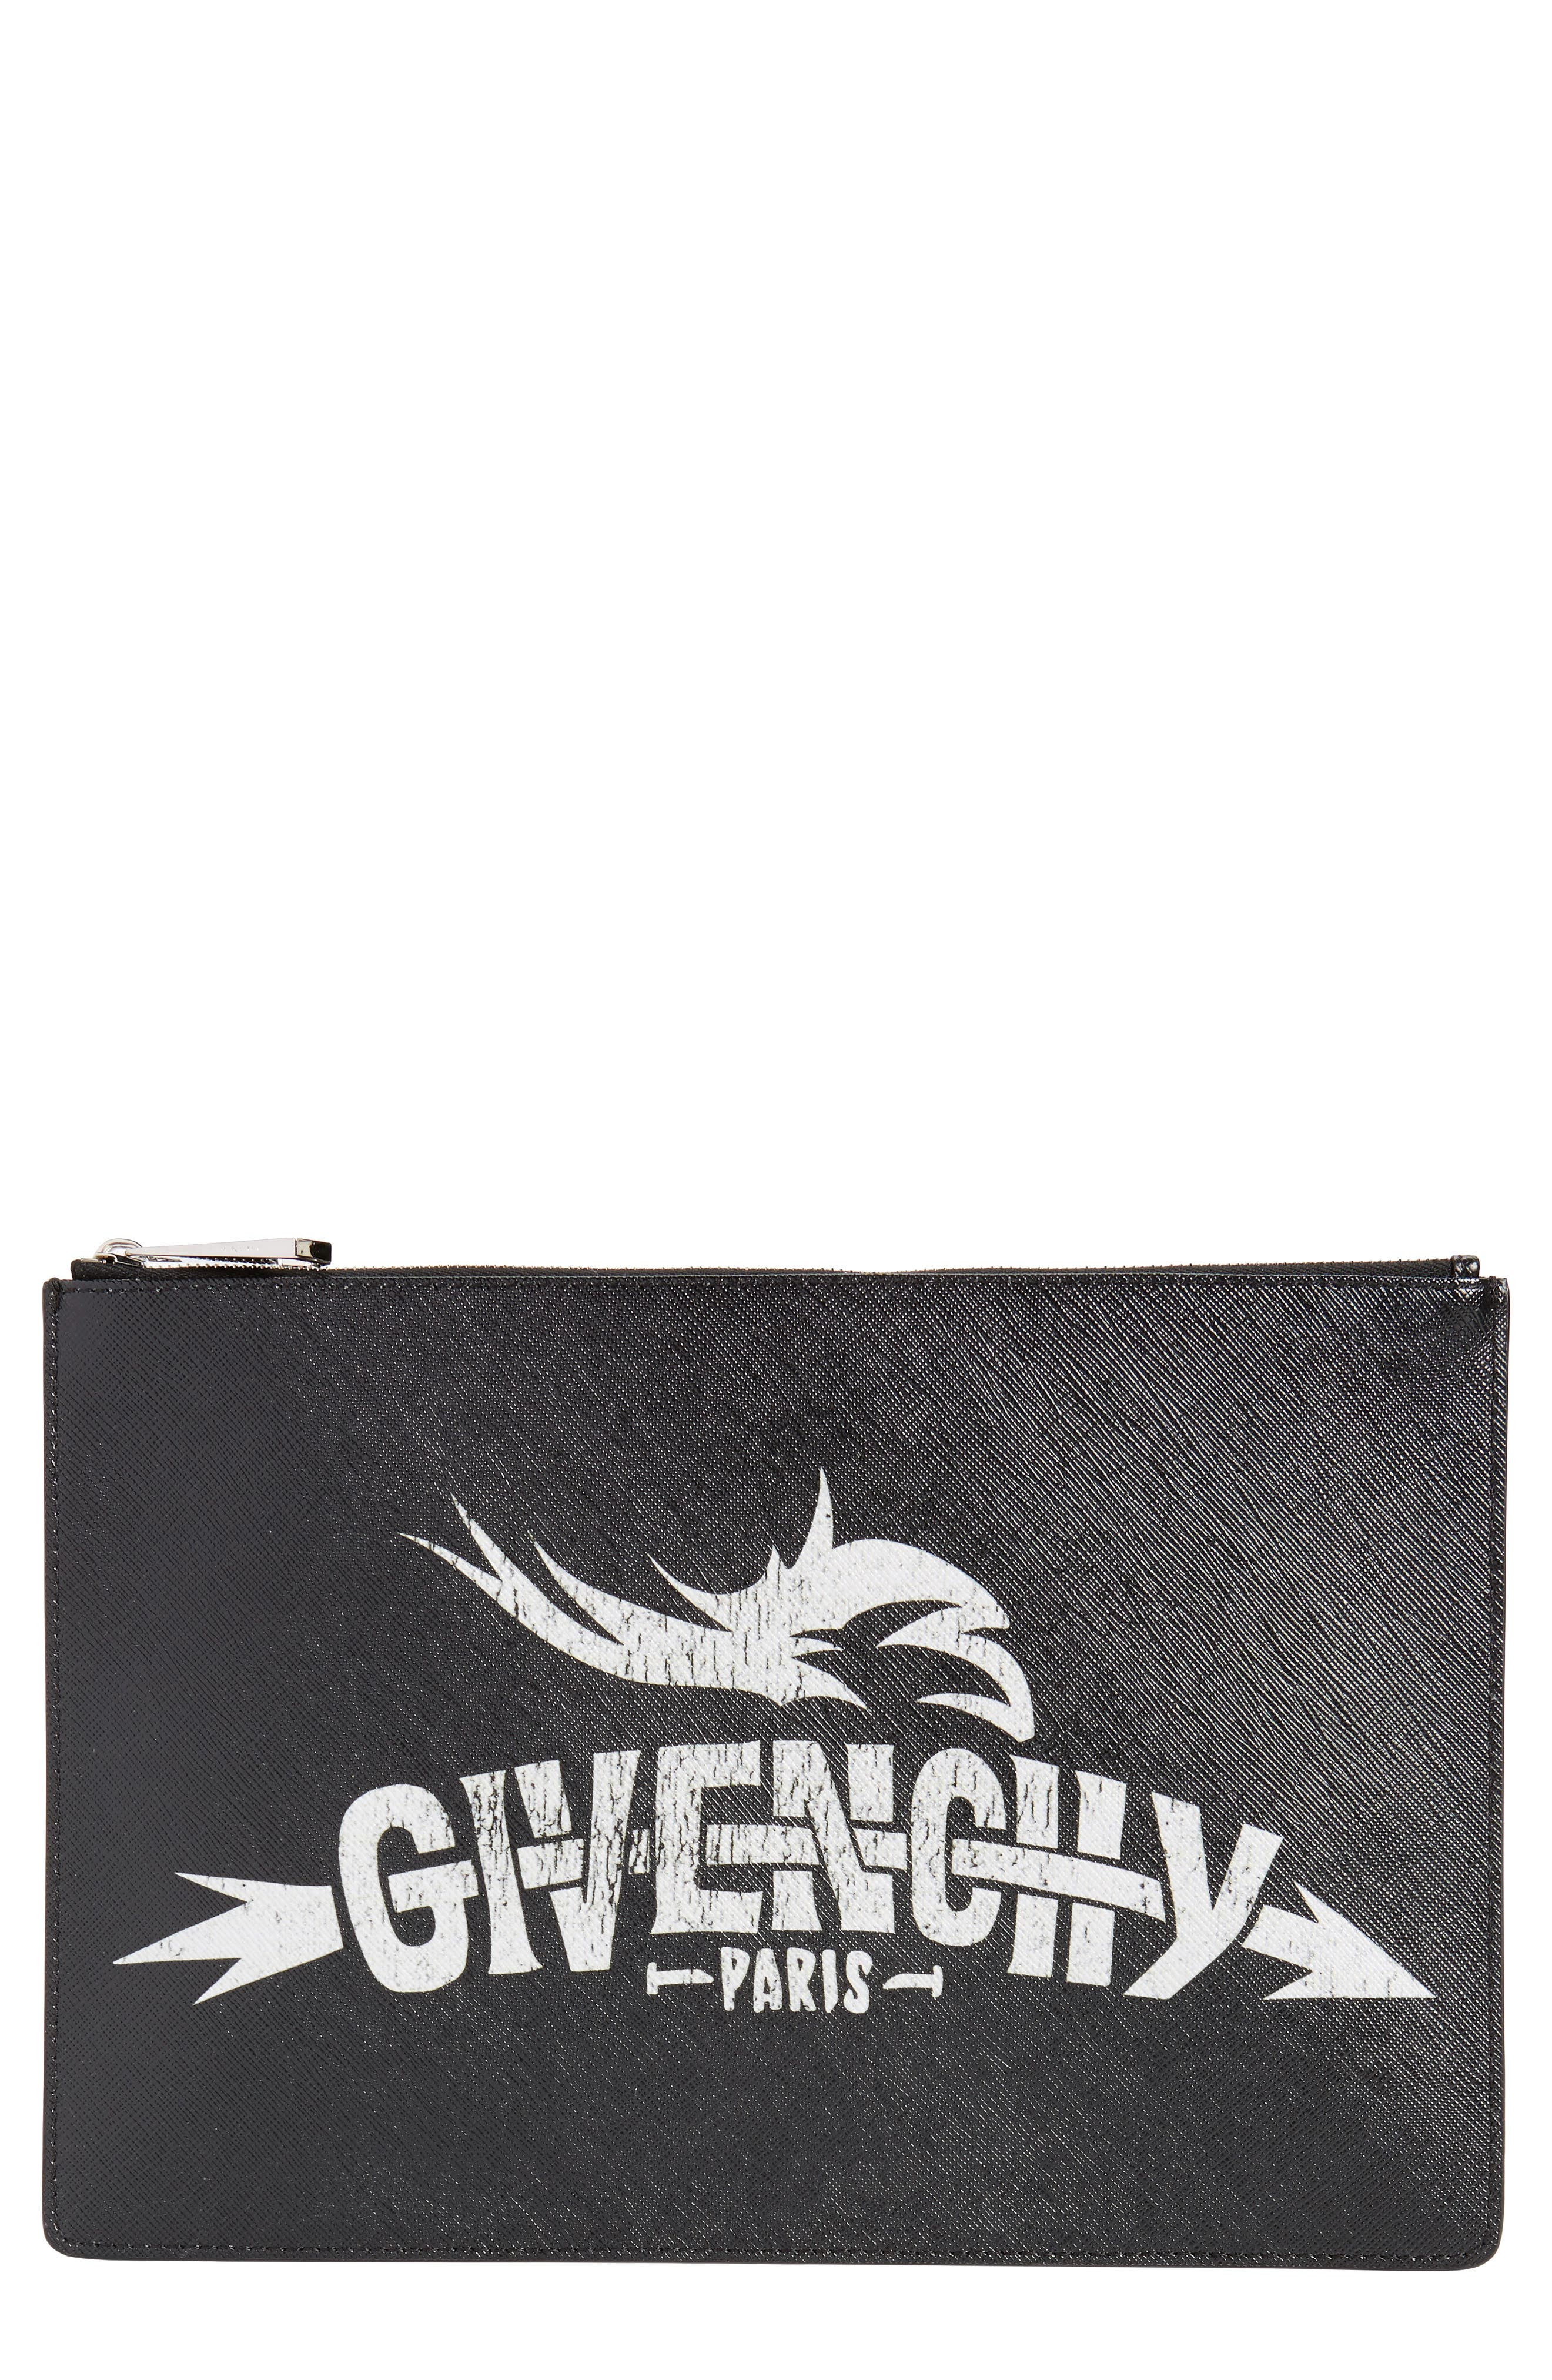 2d75947a01 Givenchy Medium Icon Faux Leather Print Pouch - Black